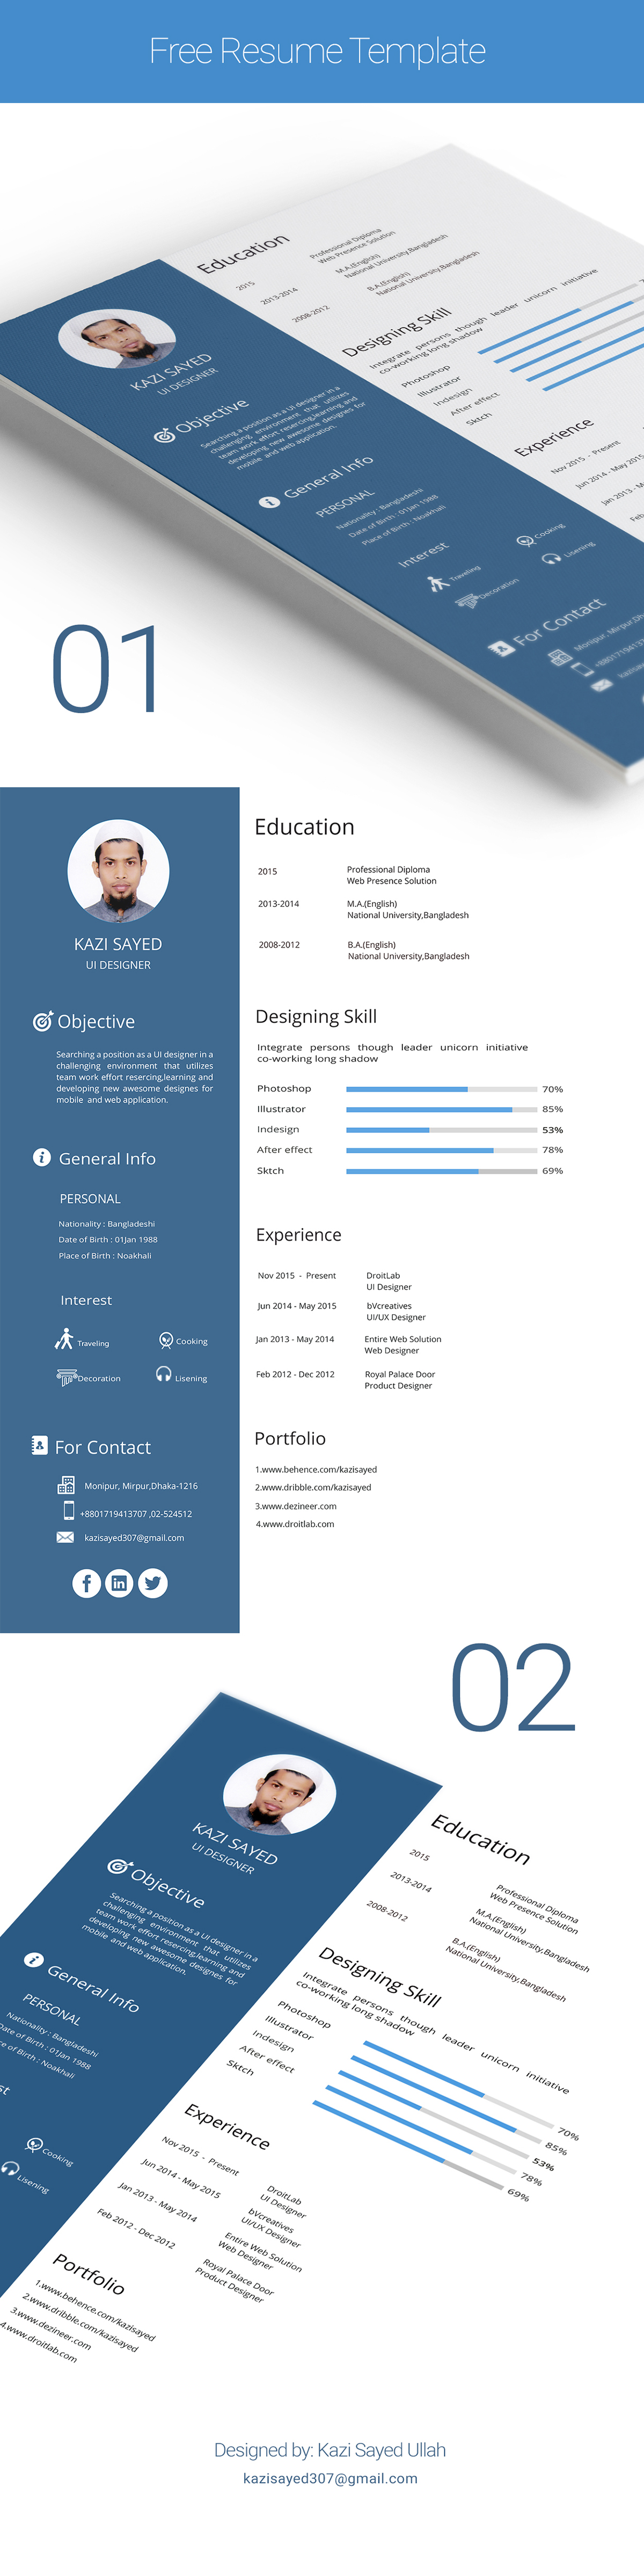 Free Clean Resume Template For UI Designers